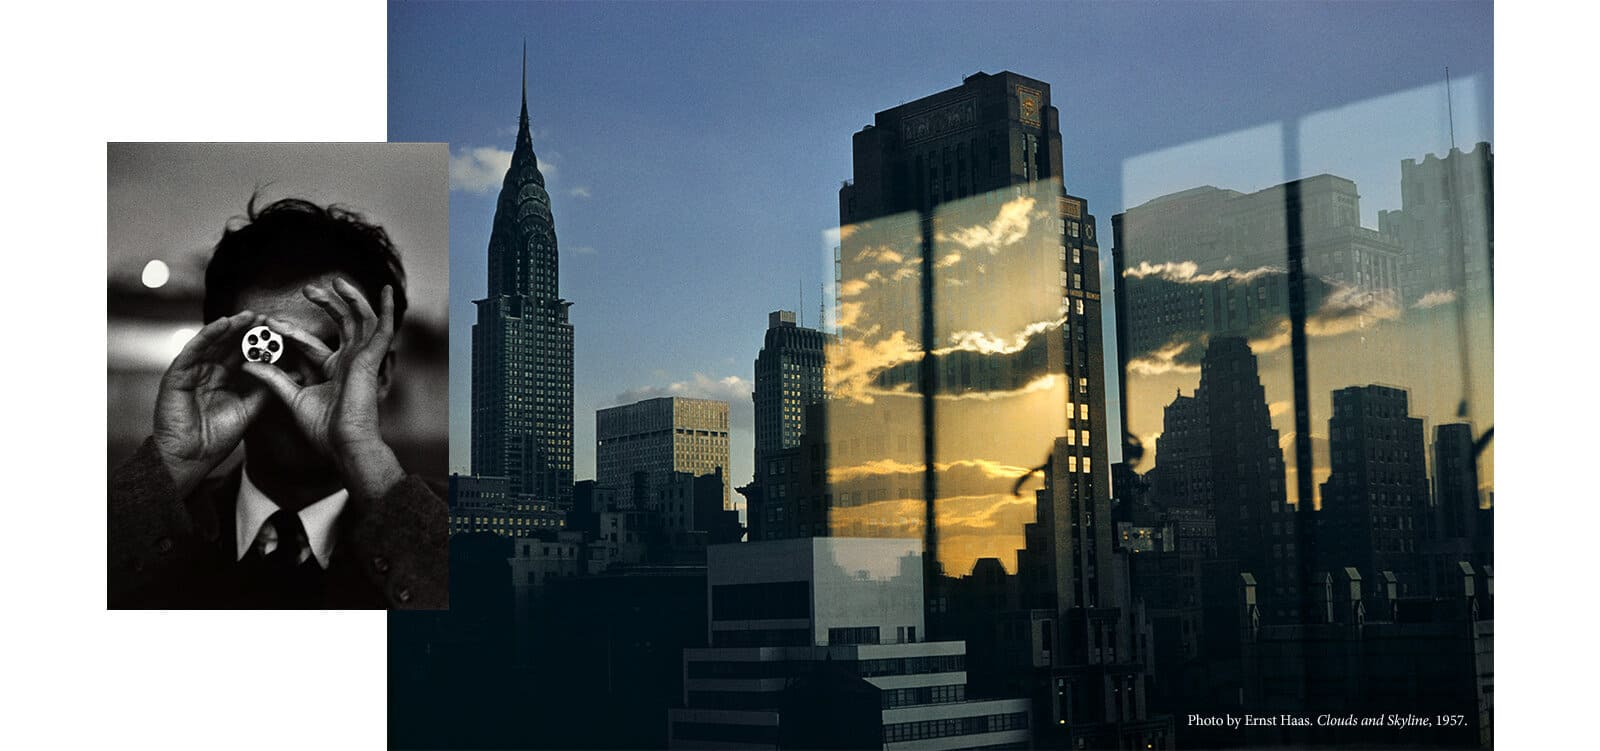 A black-and-white image of photographer Ernst Haas holding a camera is placed to the left of one of his works. This color photograph by Ernst Haas abstracts images of light reflections and clouds with the New York City skyline. A photograph of the Chrysler Building and midtown Manhattan is juxtaposed with four long rectangles showing a golden-and-blue sky with white clouds above the Manhattan skyline.